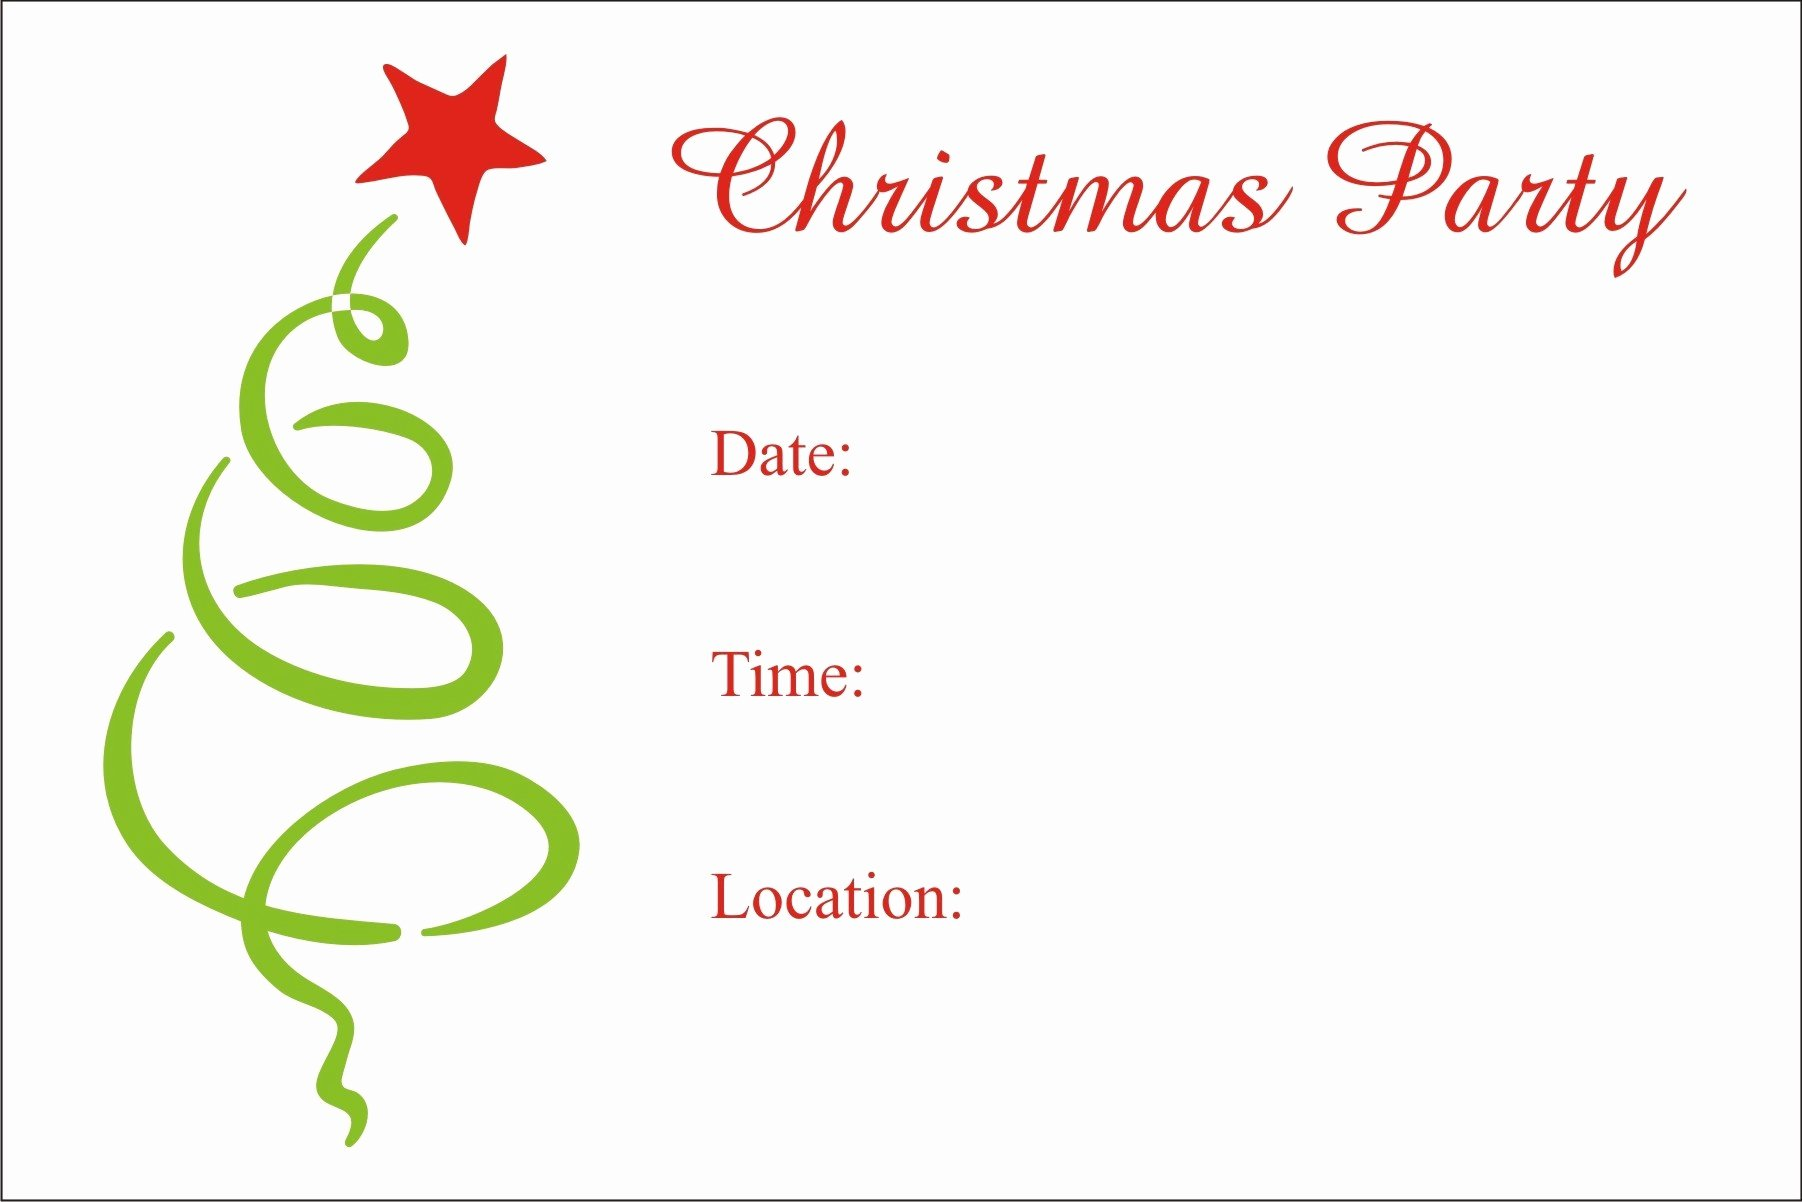 Word Template for Invitations New Holiday Party Invitation Template Word